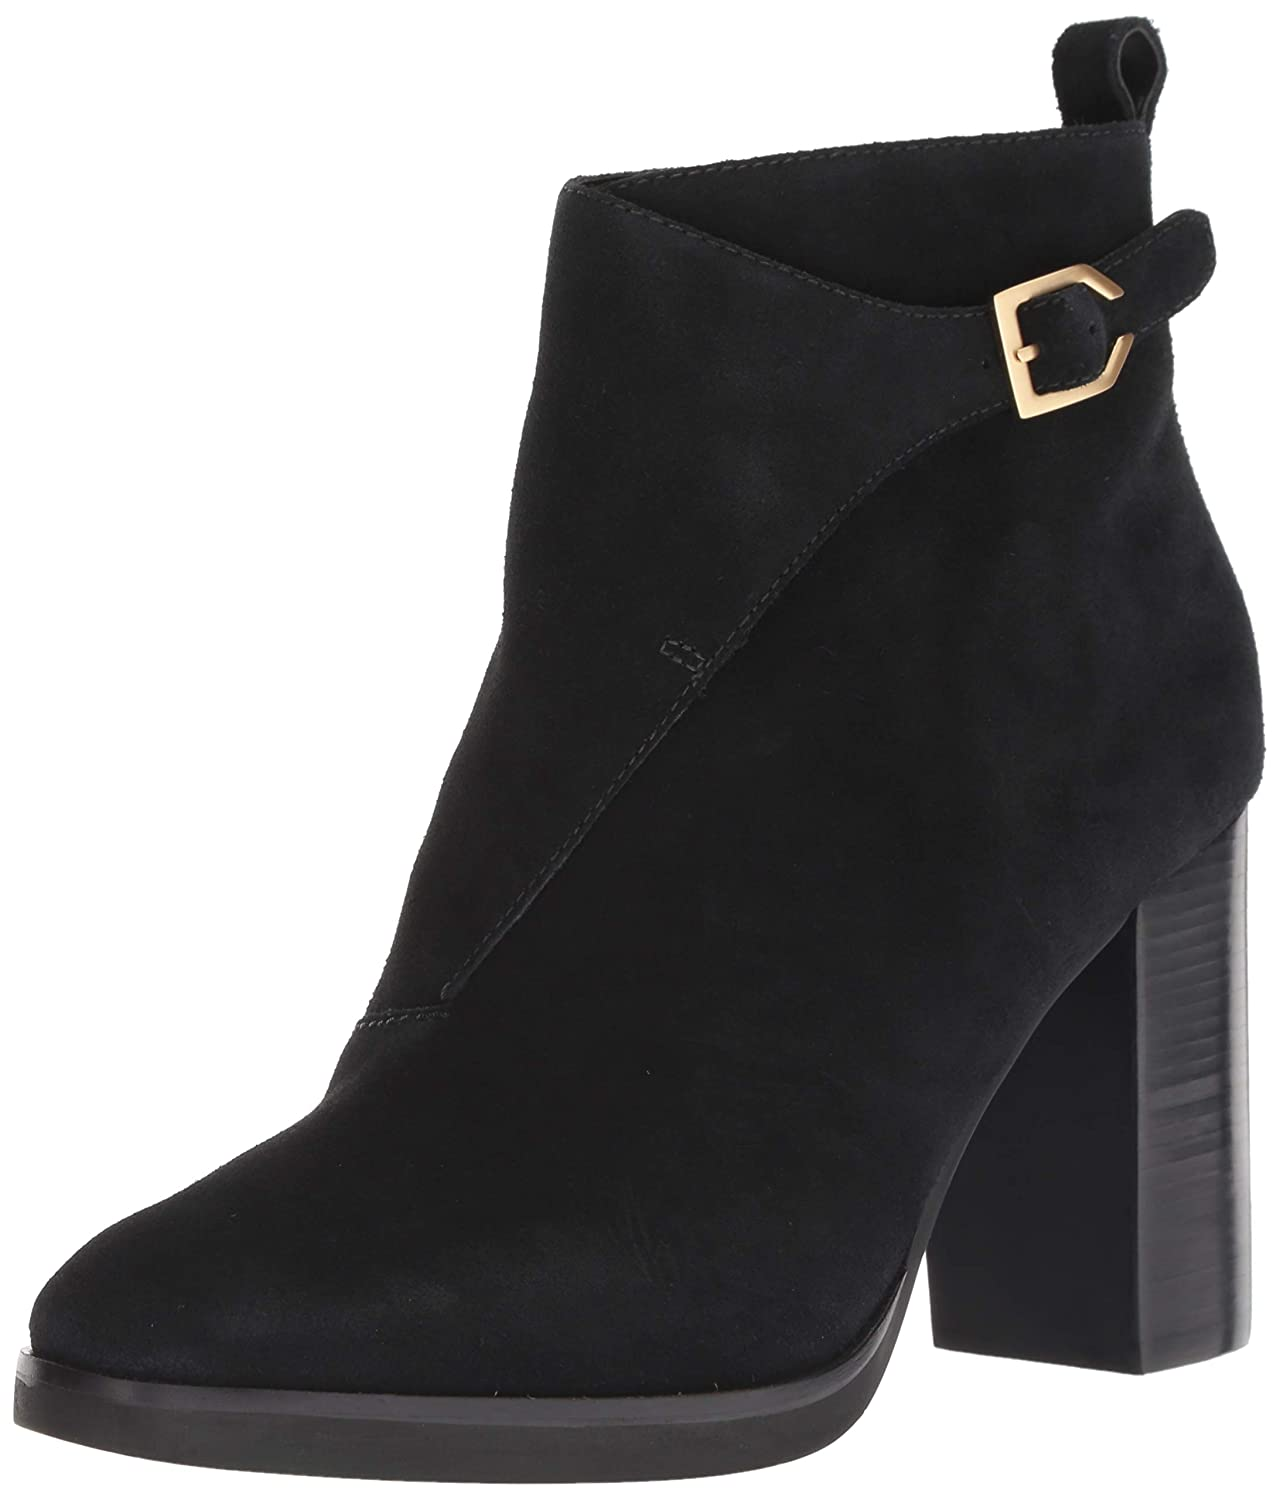 Black Suede Cole Haan Womens Harrington Grand Riding Bootie (85mm) Ankle Boot